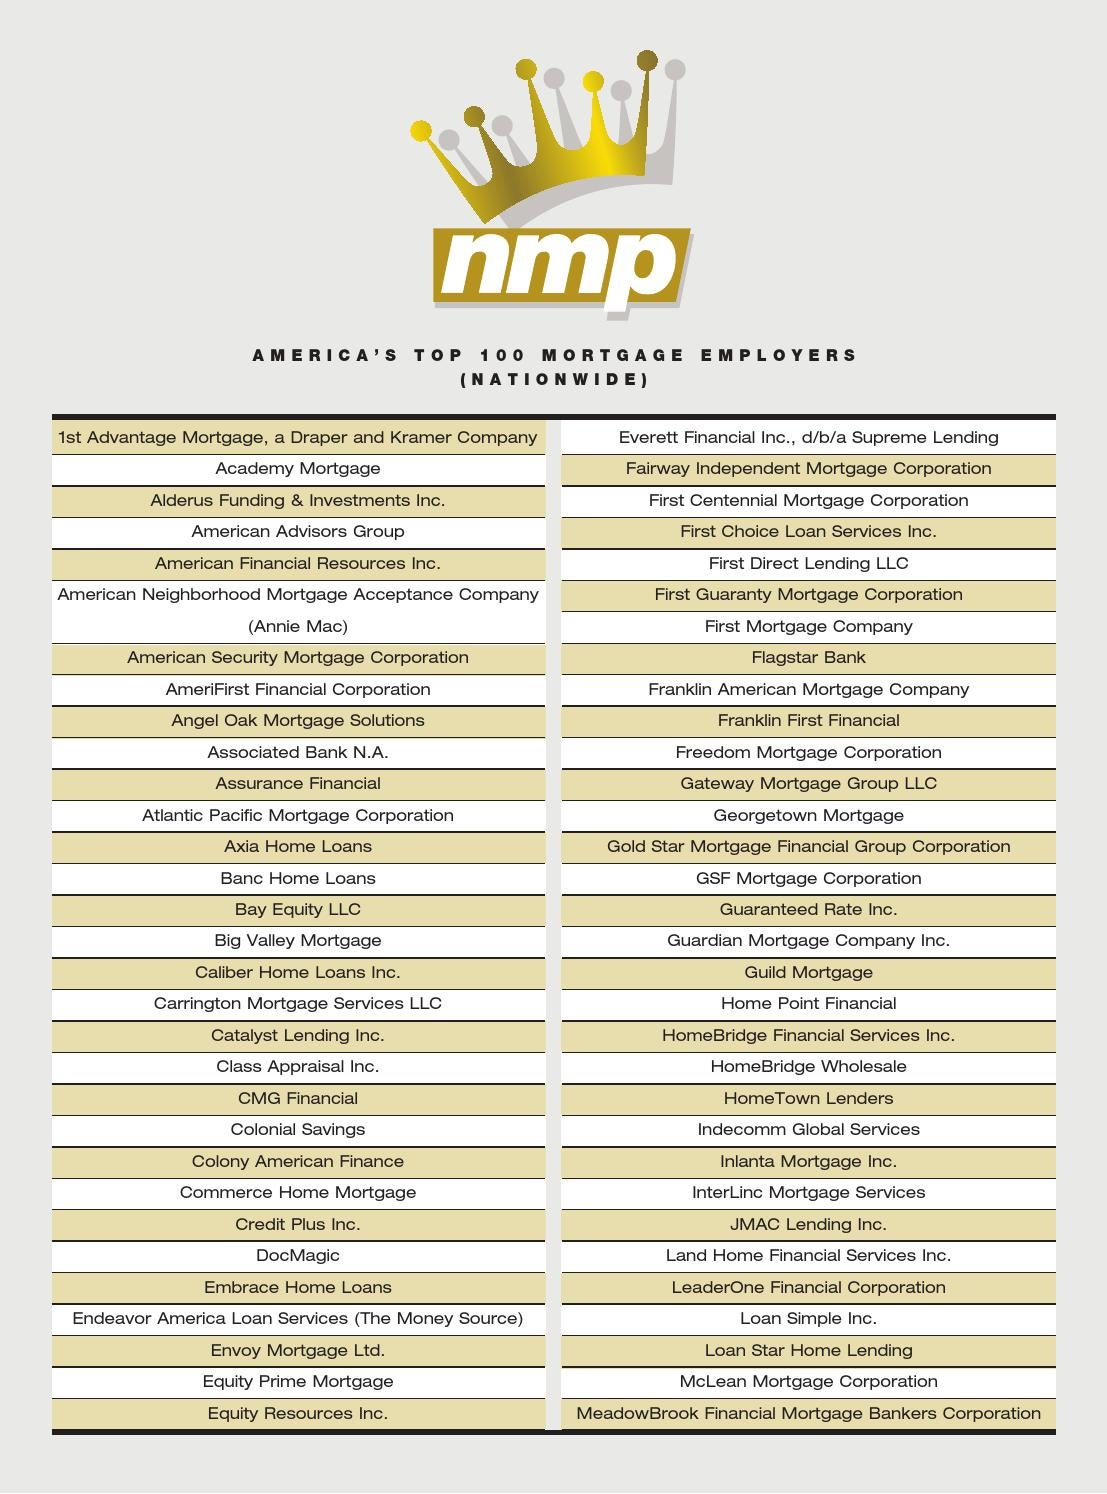 national mortgage professional magazine by nmp media national mortgage professional magazine 2016 by nmp media corp page 50 issuu